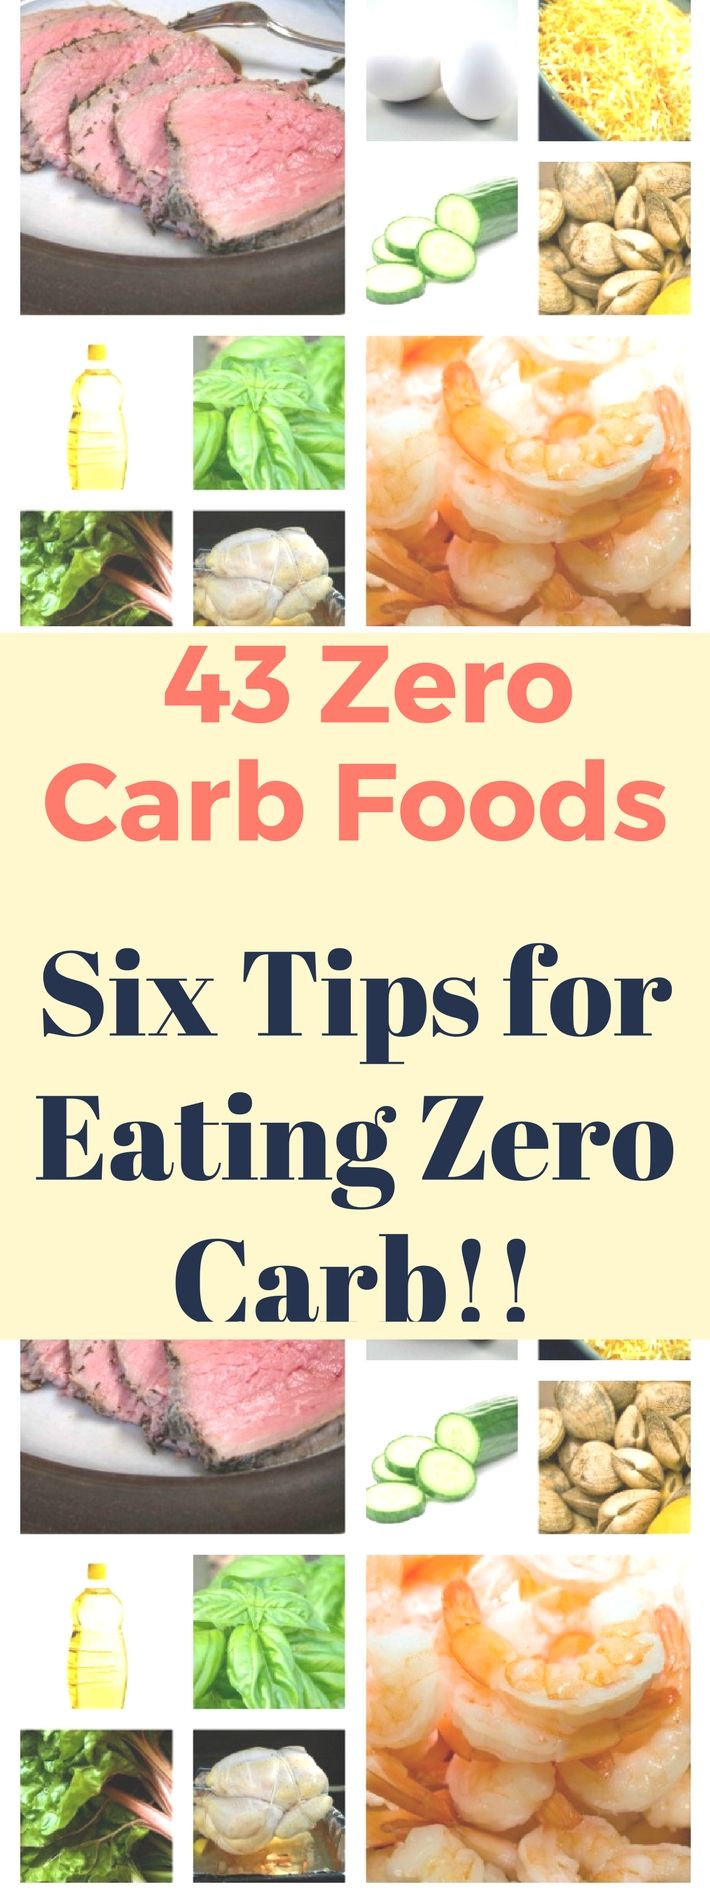 43 Zero Carb Foods + Six Tips for Eating Zero Carb! Read this!!